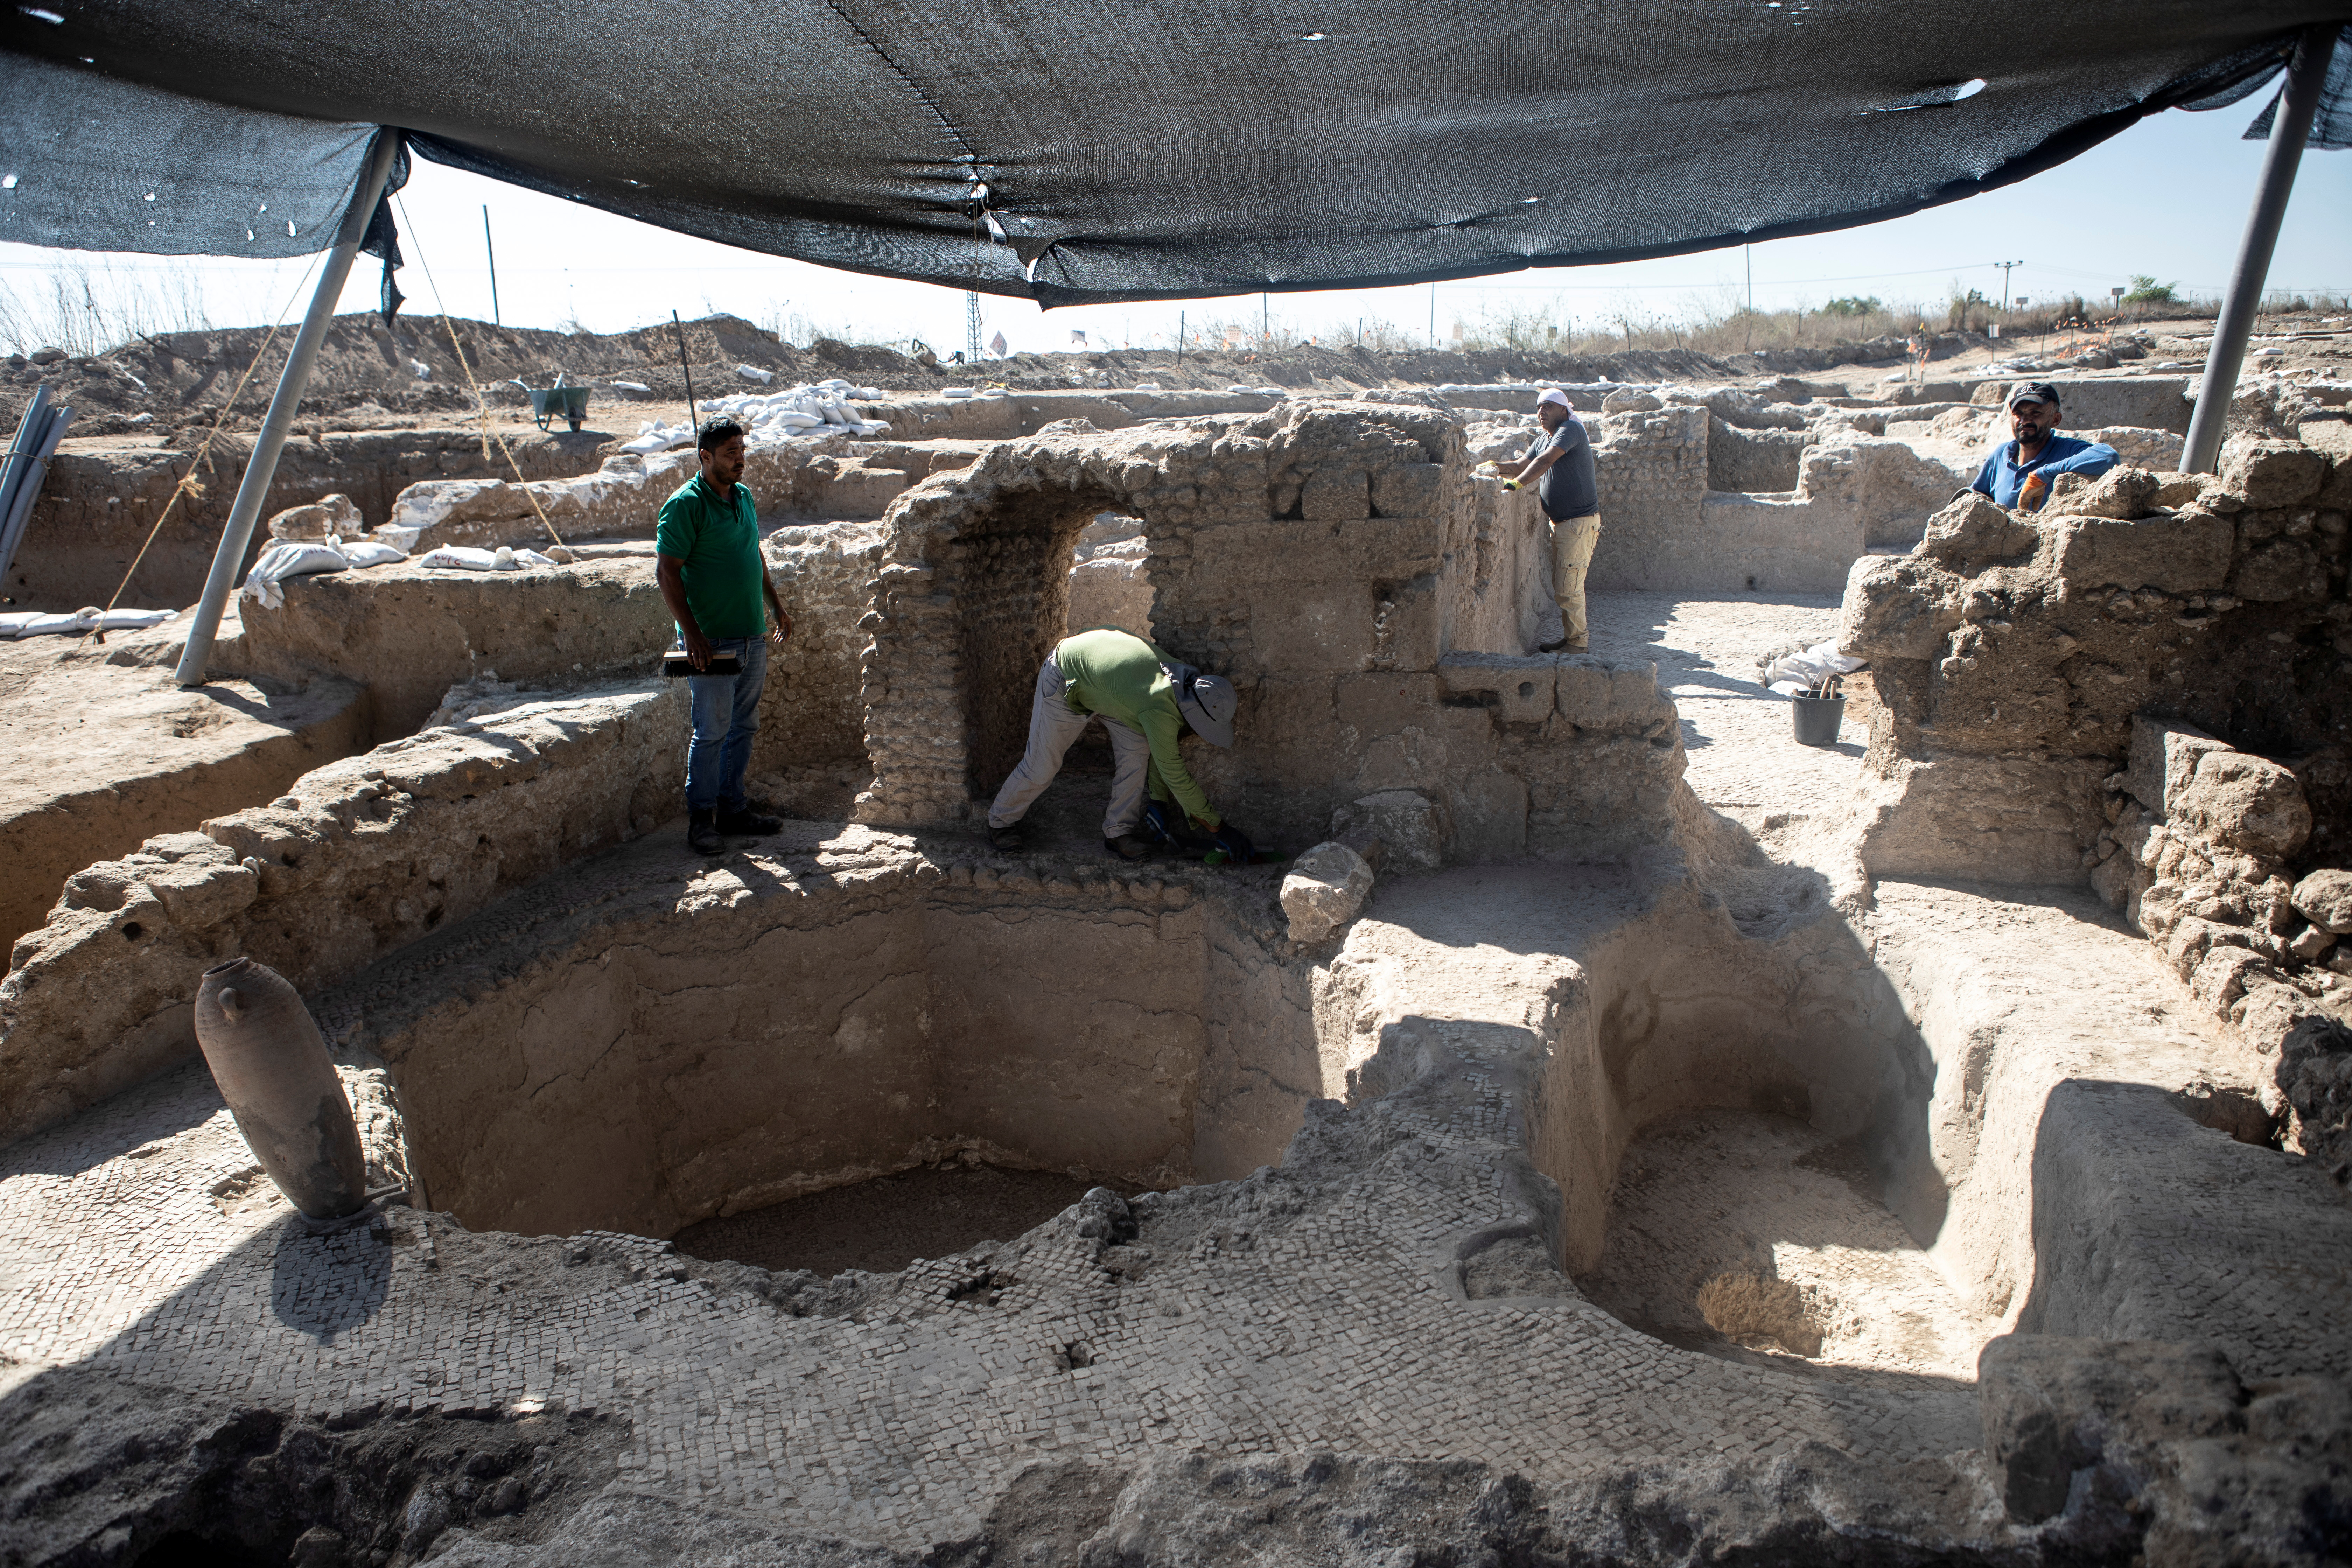 Israel Antiquities Authority workers stand at the remains of a 1500-year-old Byzantine winery in Yavne, Israel October 11, 2021. REUTERS/Nir Elias